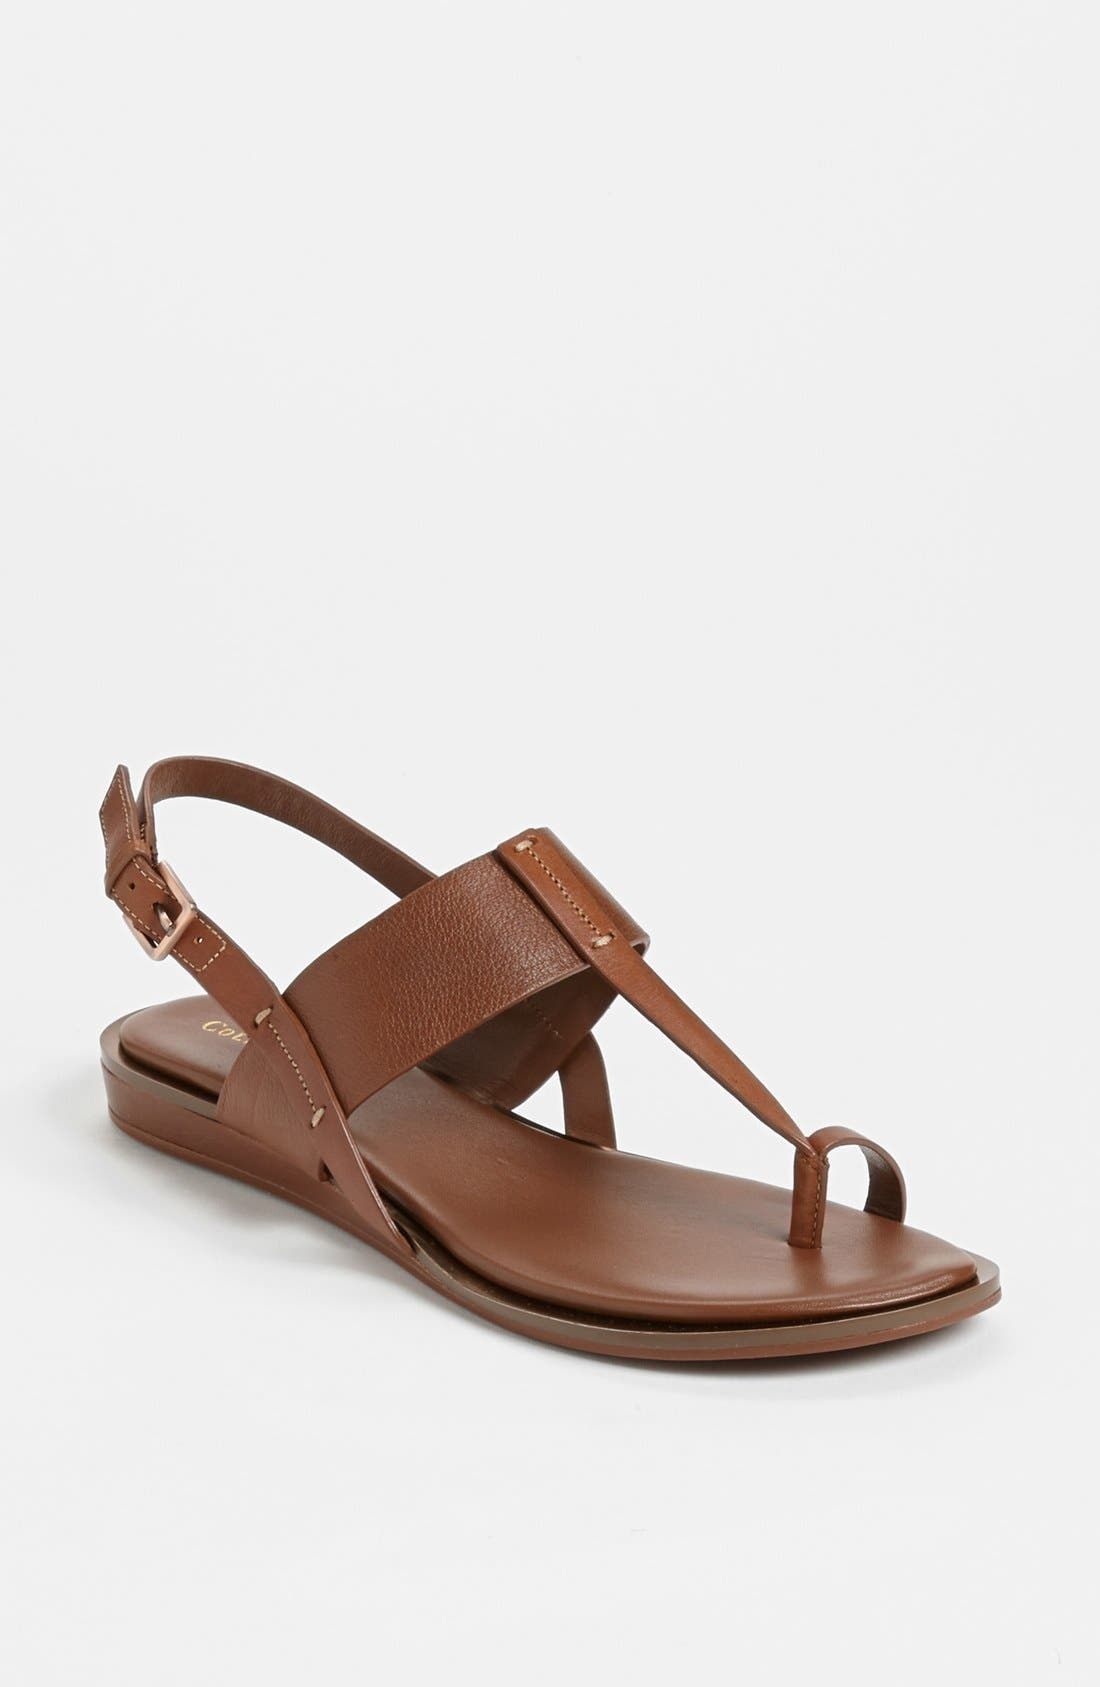 Alternate Image 1 Selected - Cole Haan 'Pelham' Sandal